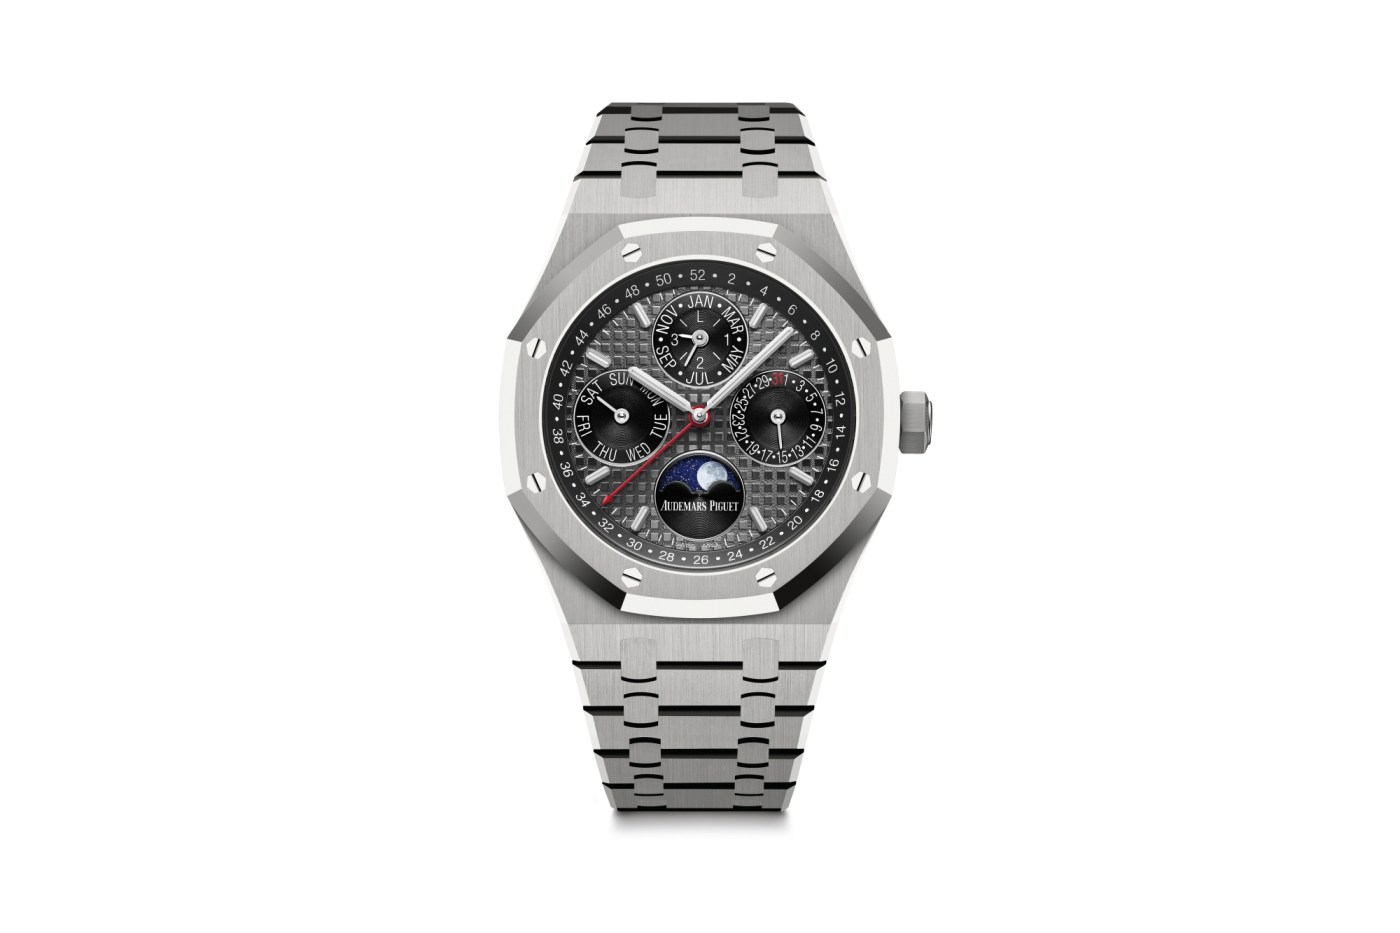 Audemars Piguet Royal Oak Perpetual Calendar China Limited Edition